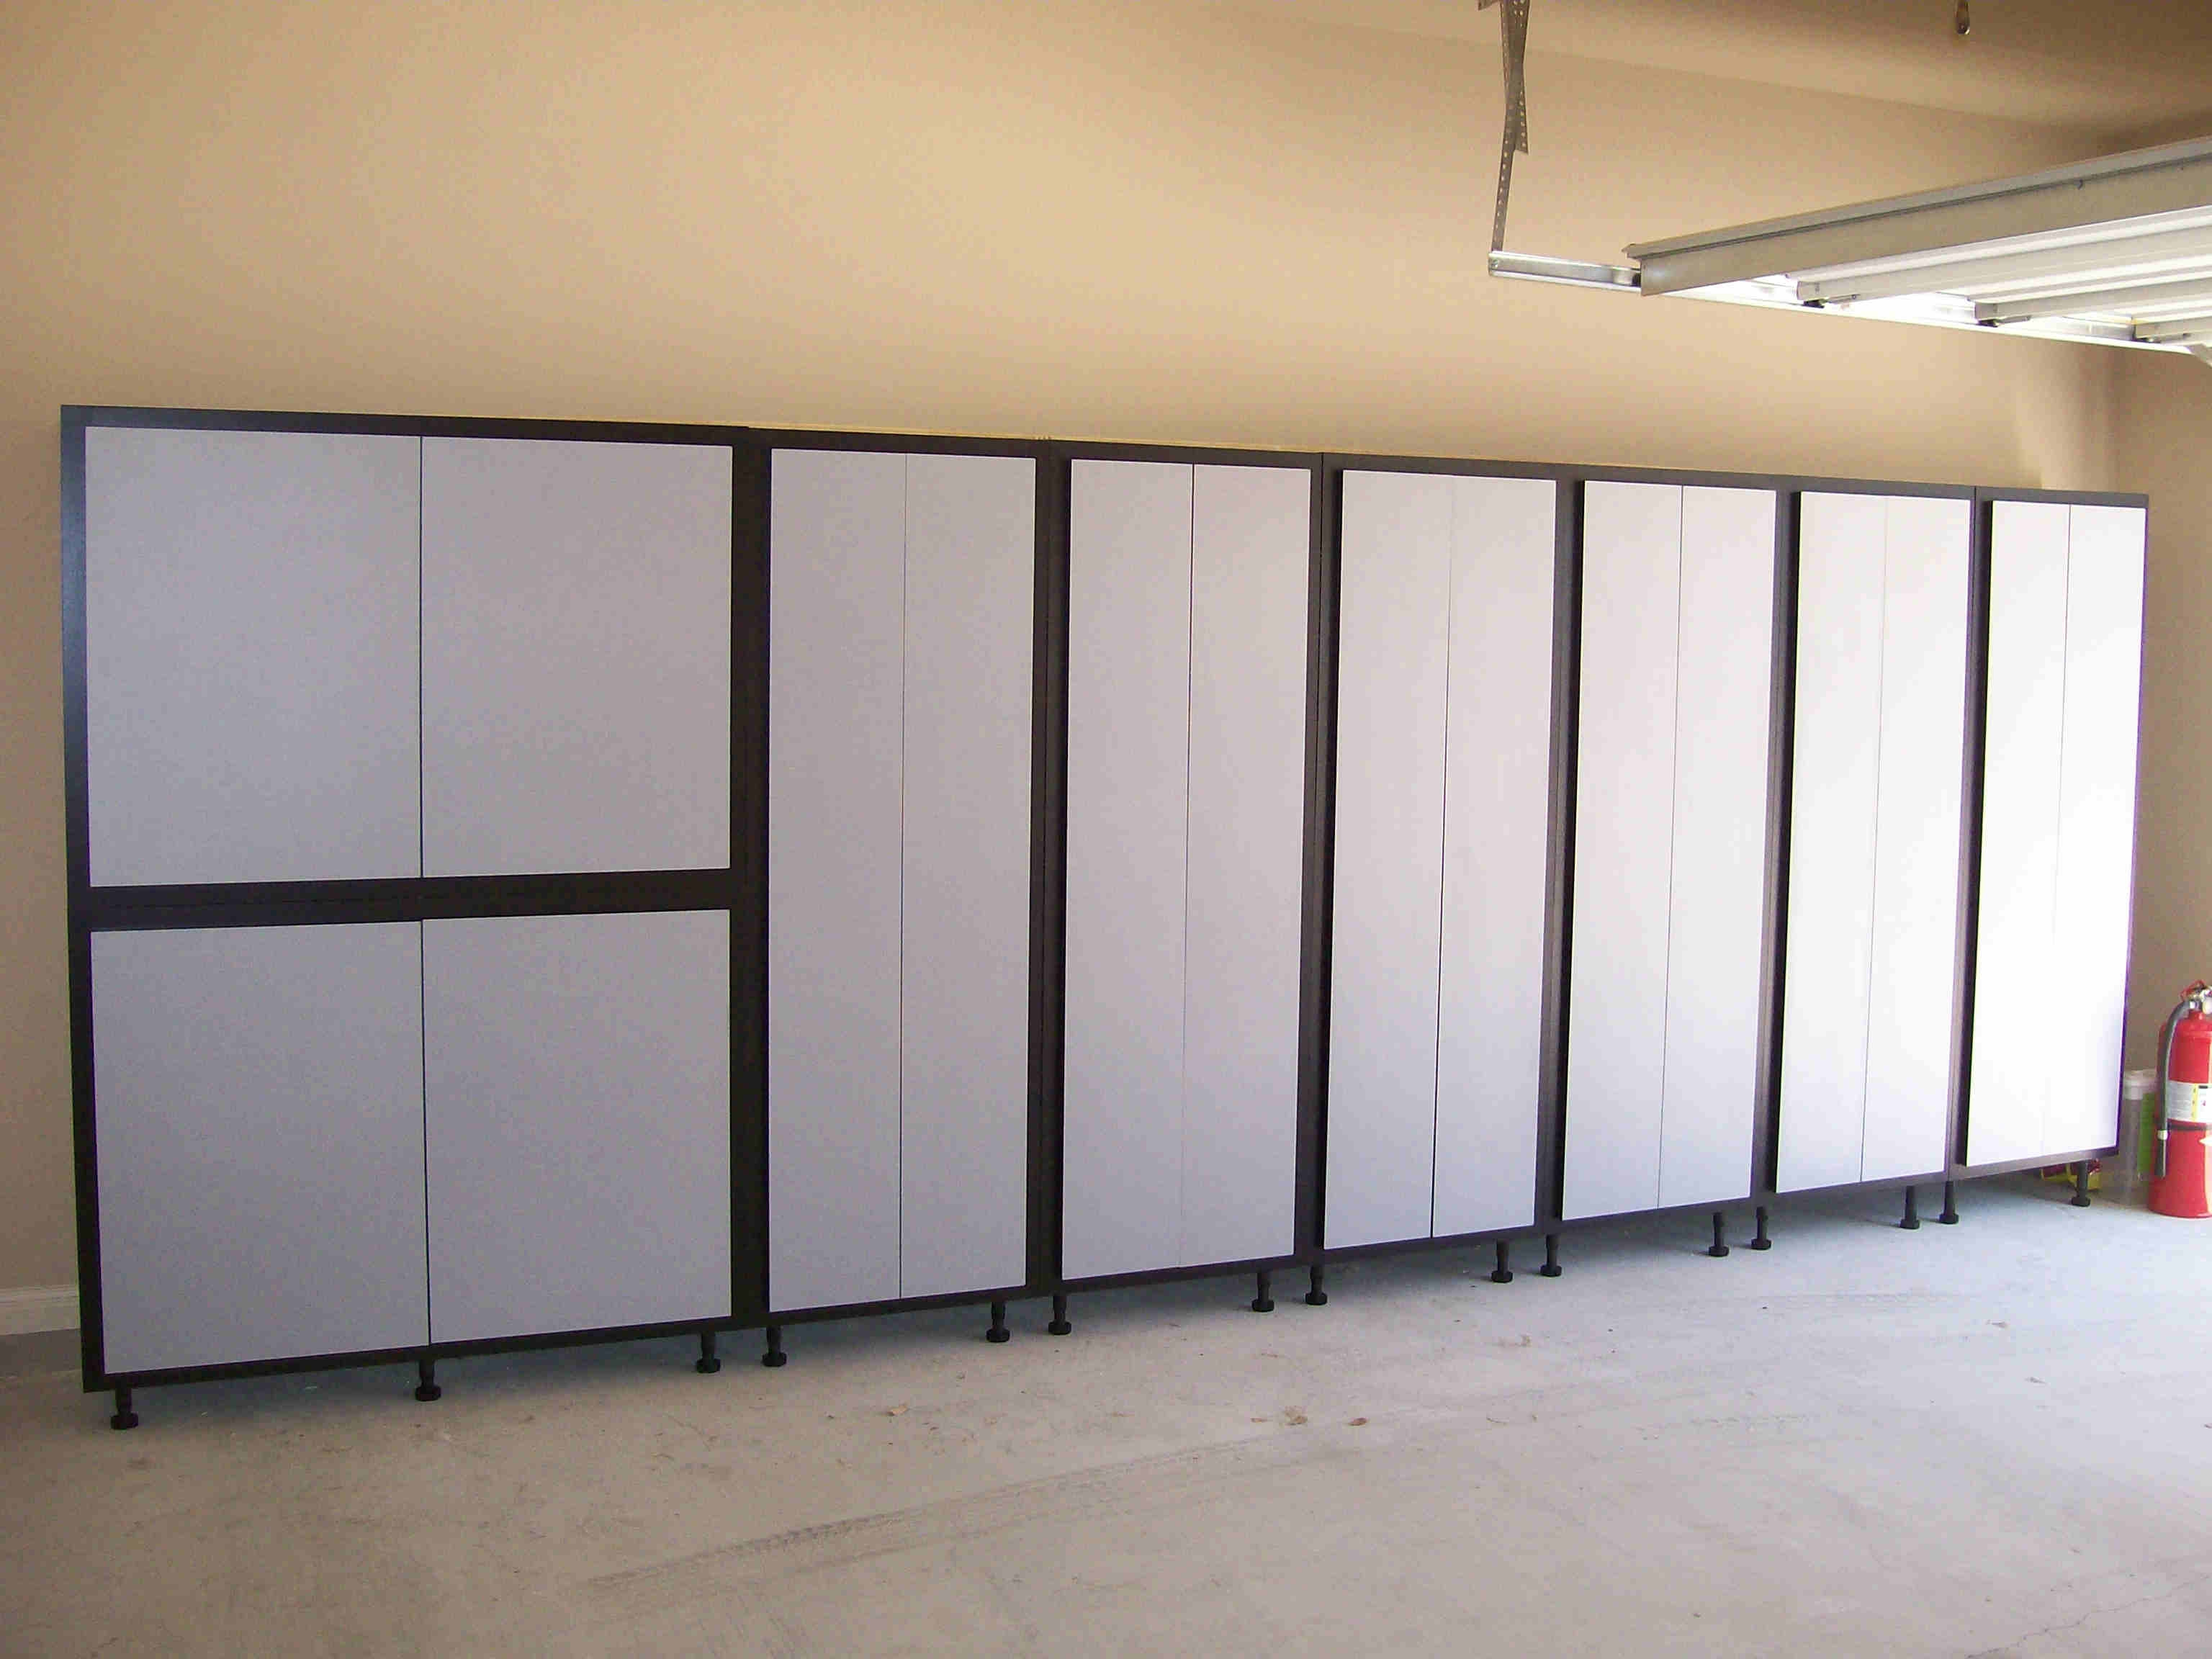 Garage Wall Cabinets With Sliding Doors